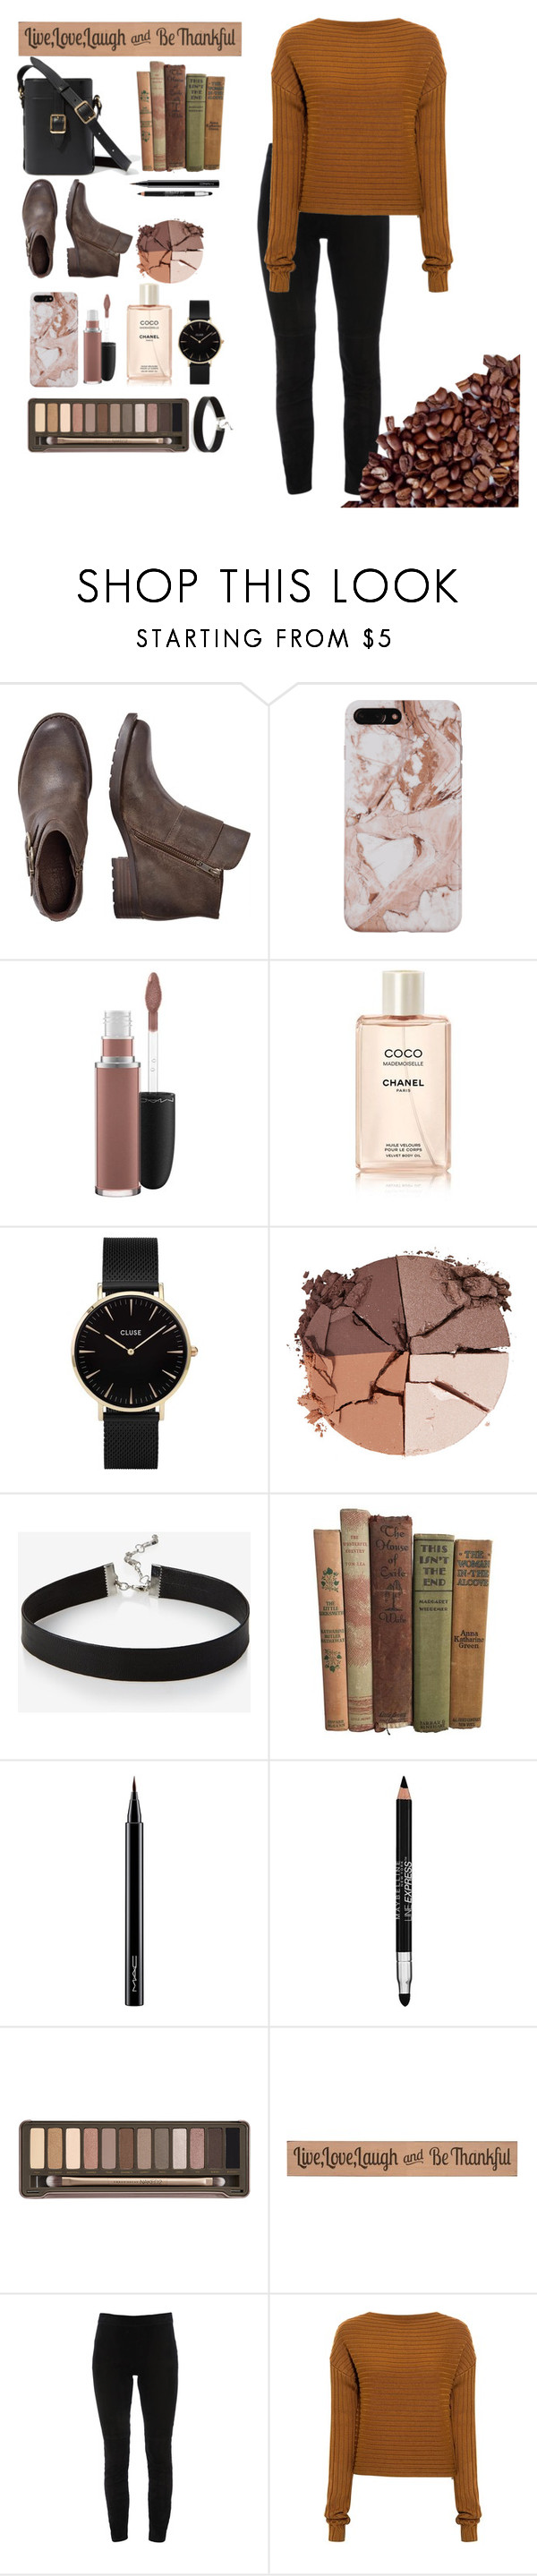 """Untitled #70"" by rana021 ❤ liked on Polyvore featuring MAC Cosmetics, CLUSE, lilah b., Express, Maybelline, Urban Decay, DutchCrafters, Elie Tahari and TIBI"